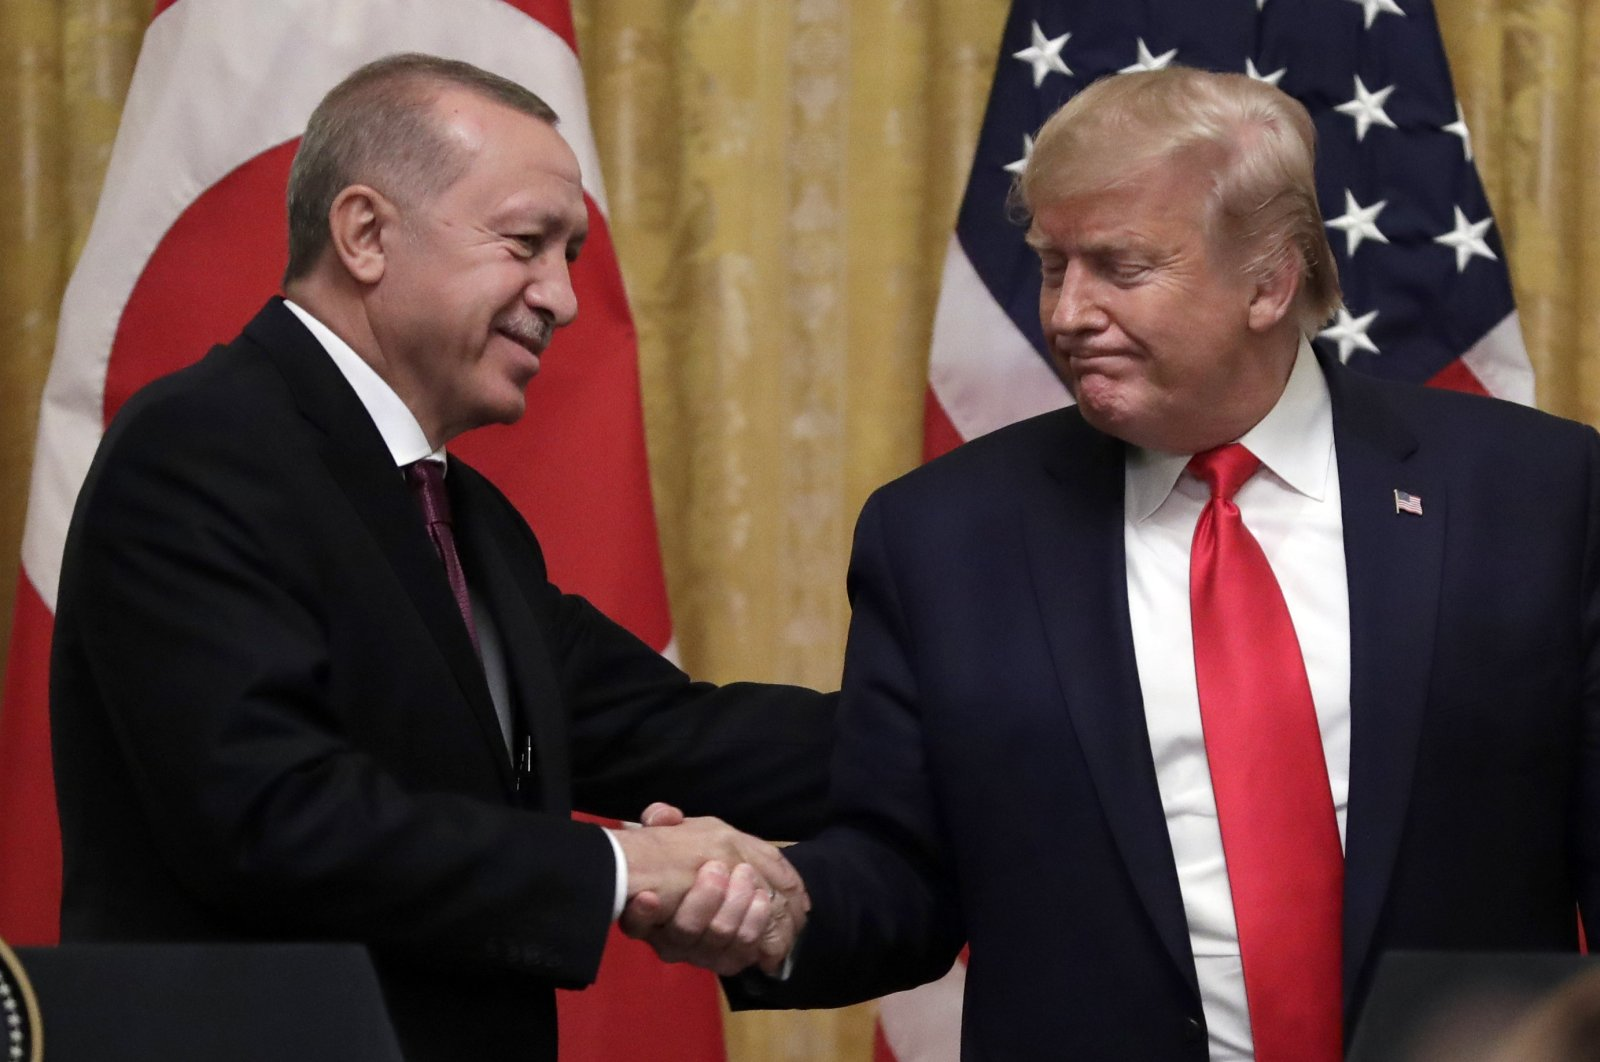 President Recep Tayyip Erdoğan shakes hands with U.S. President Donald Trump after a news conference in the East Room of the White House, Nov. 13, 2019. (AP Photo)